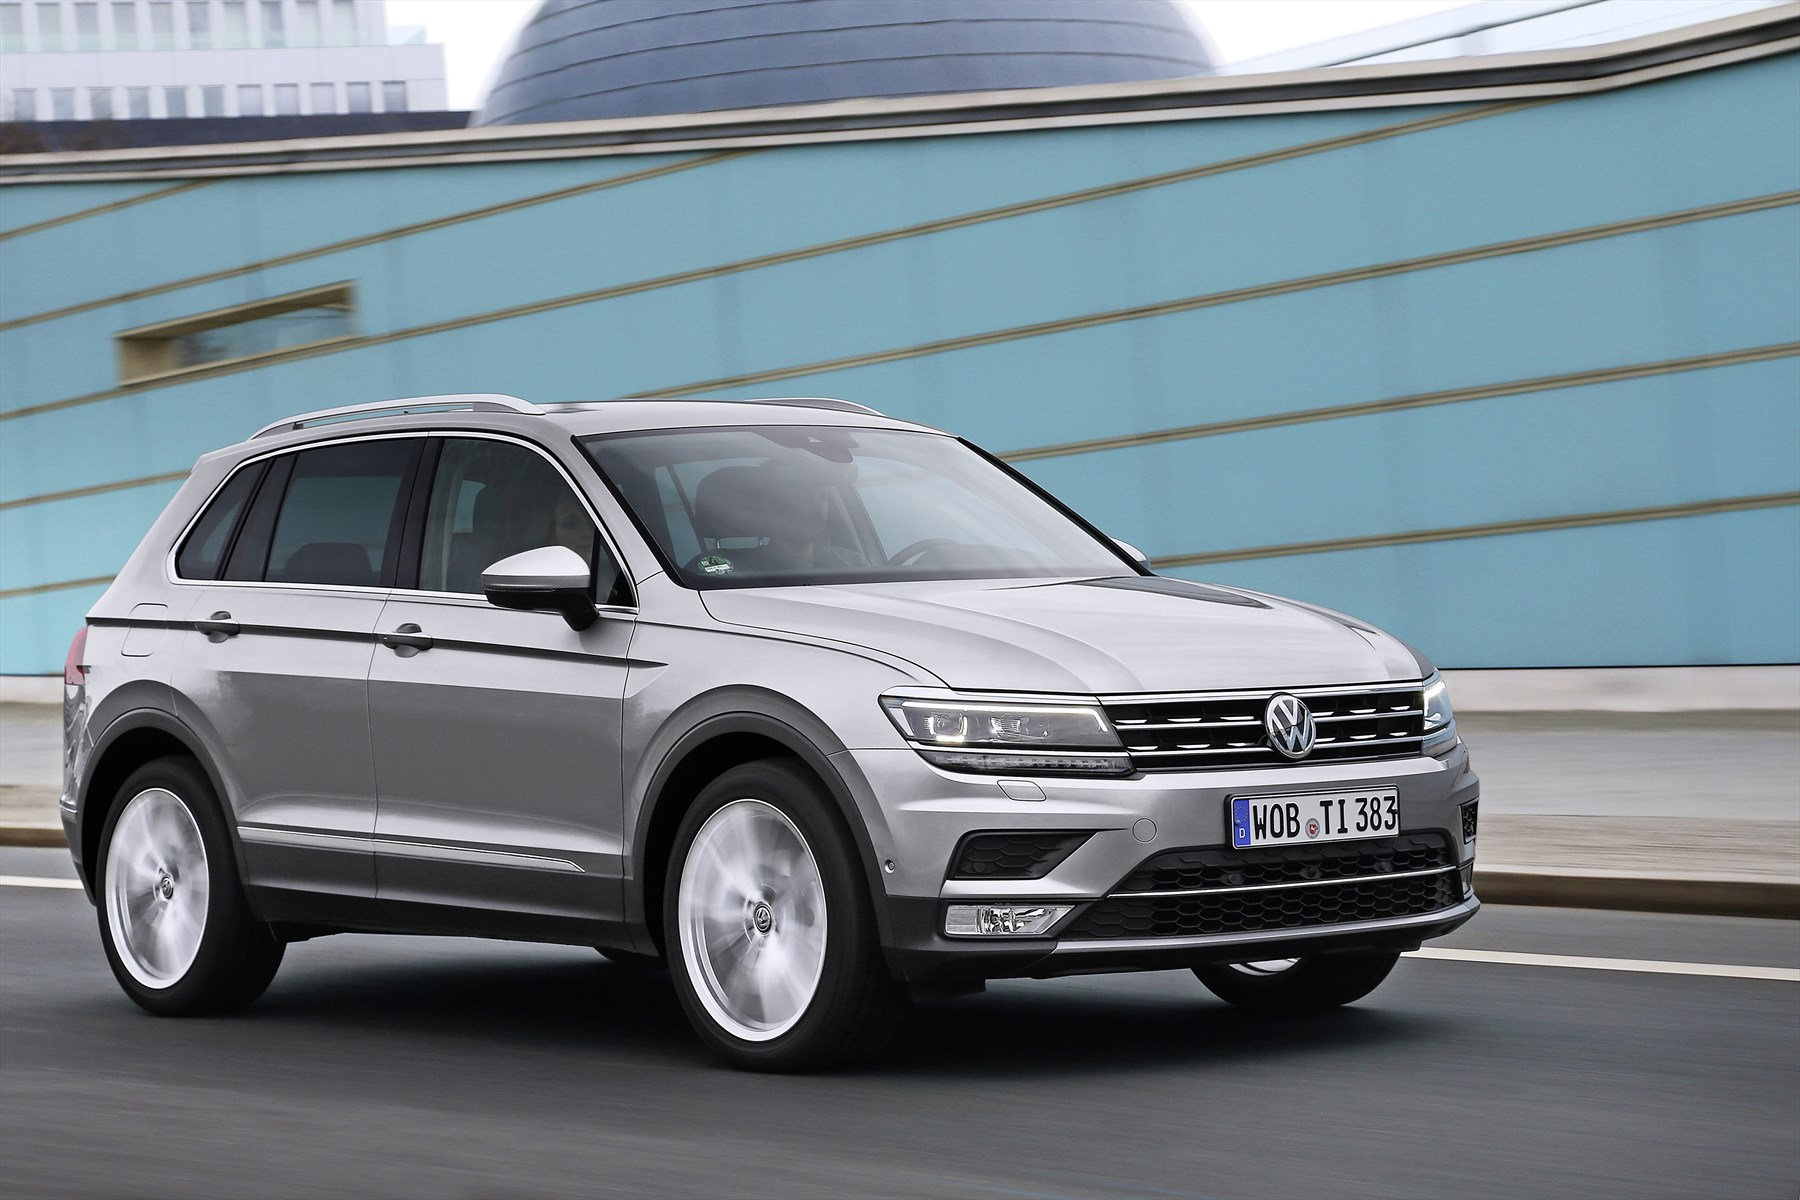 I recently hijacked a Volkswagen-Tiguan car in black. Can you predict if I can get him back 72